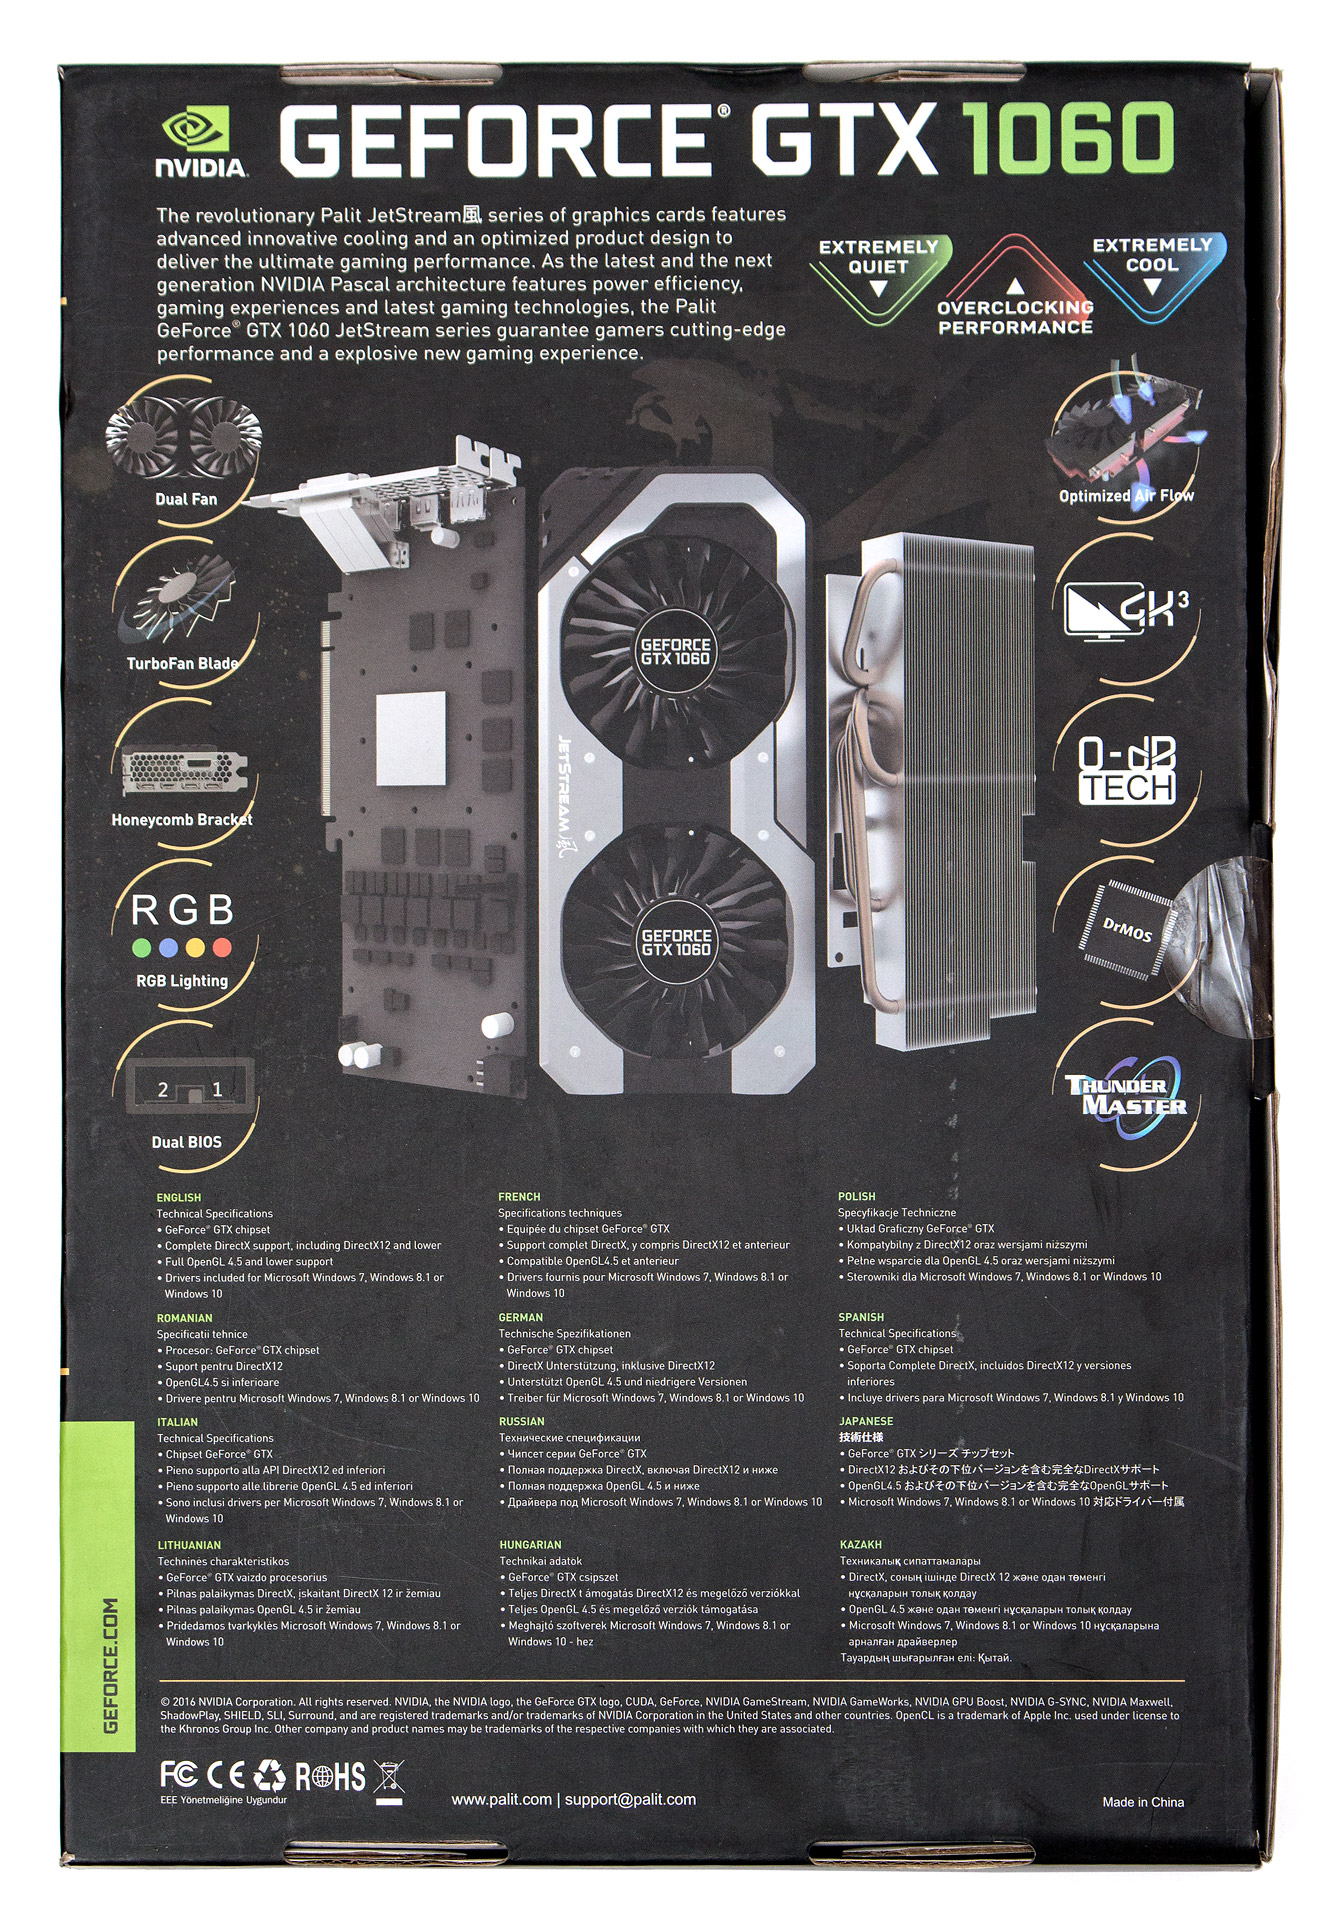 Palit geforce gtx 1060 map overview